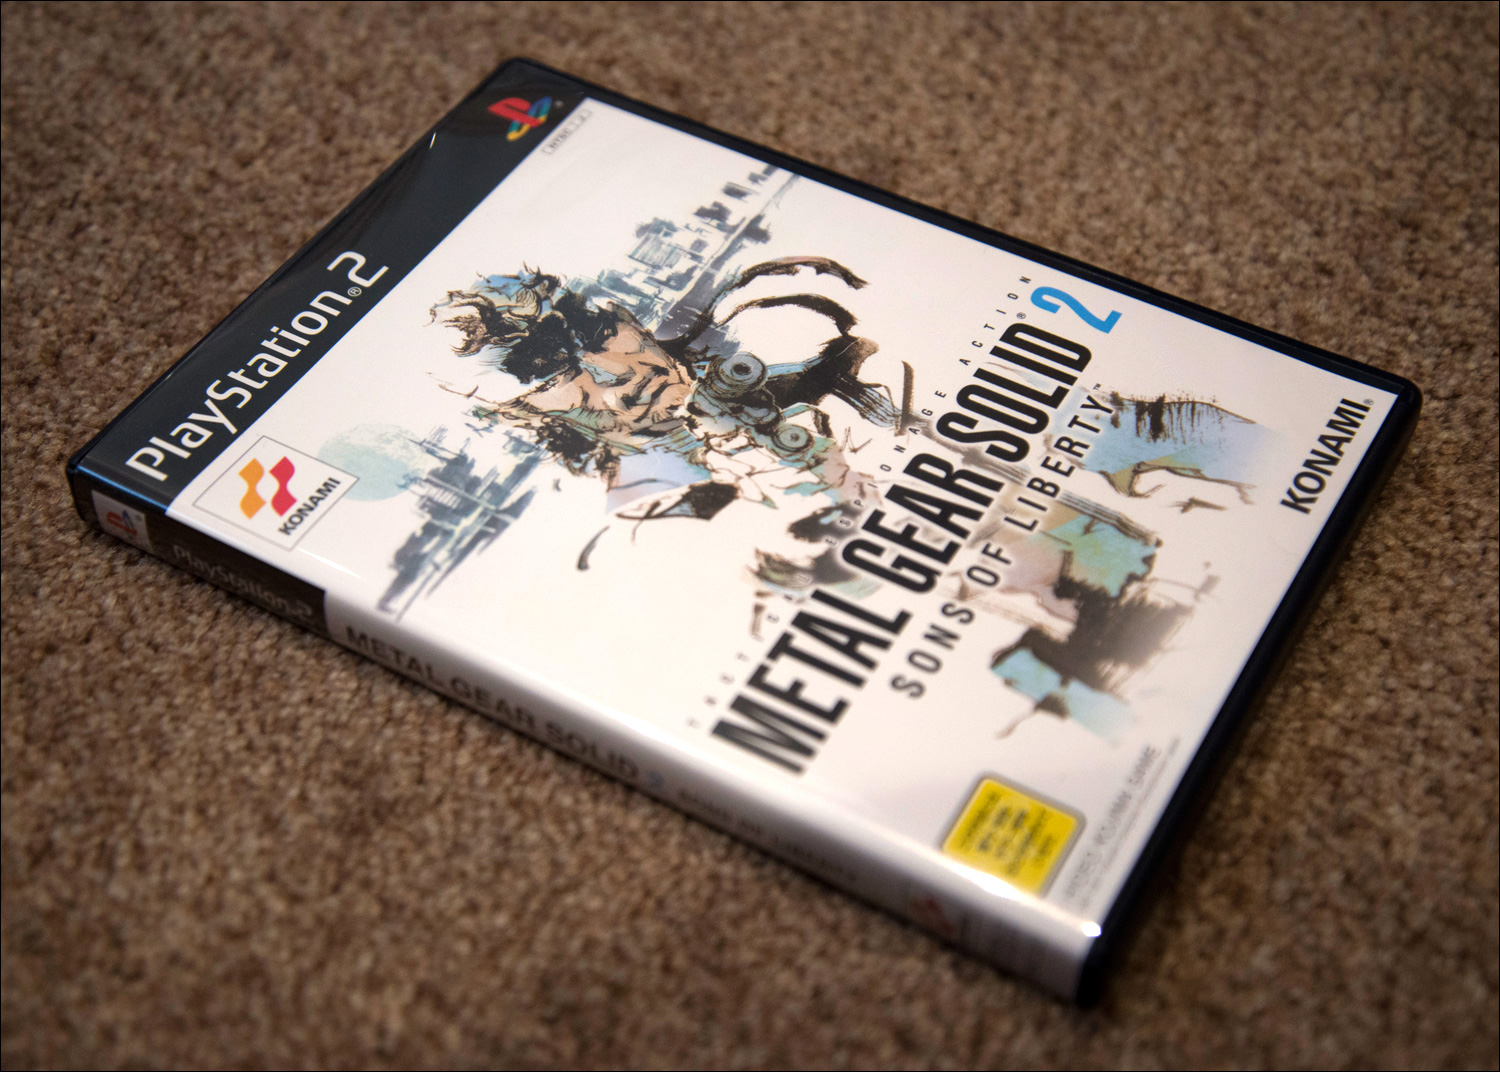 Metal-Gear-Solid-2-Sons-of-Liberty-Premium-Package-Game